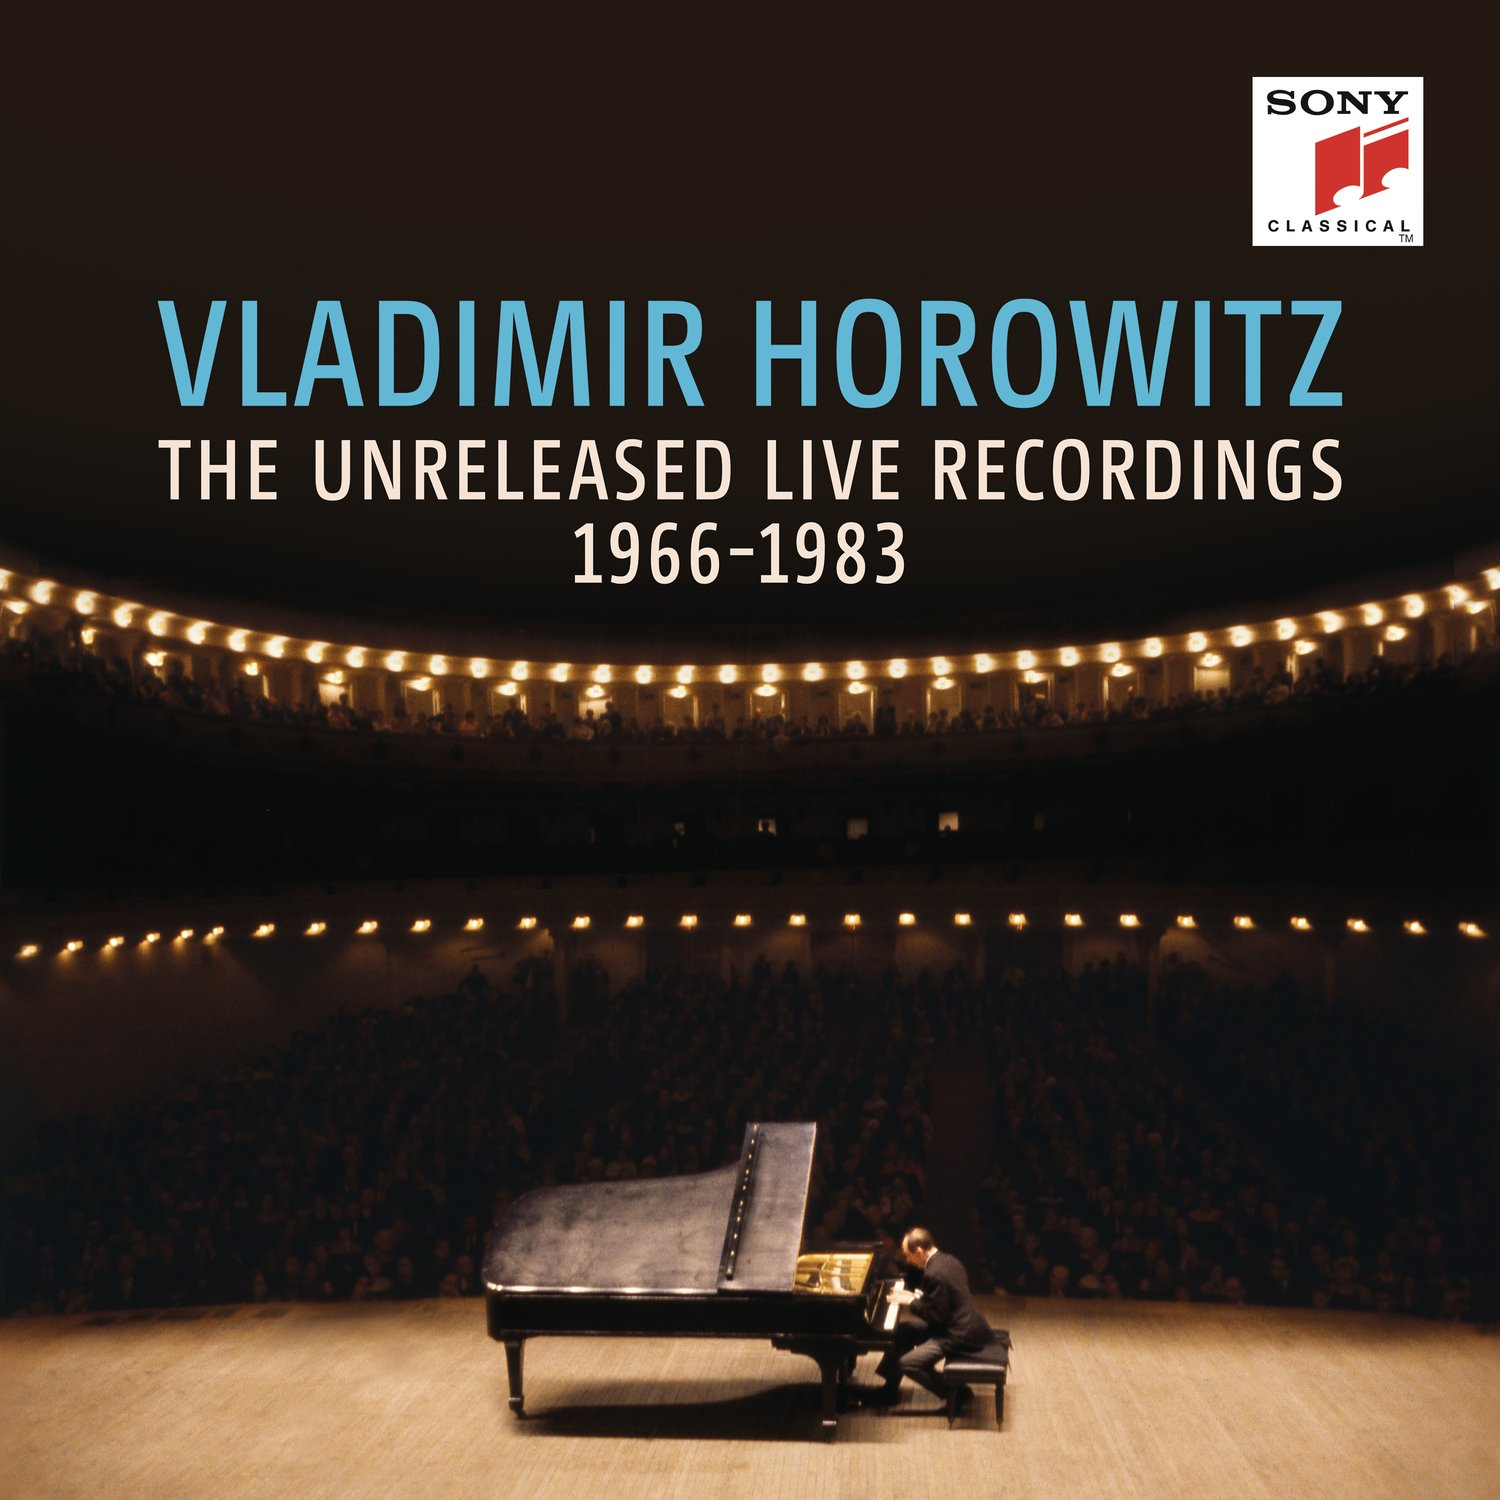 Vladimir Horowitz: The Unreleased Live Recordings 1966-1983 by Sony Classical